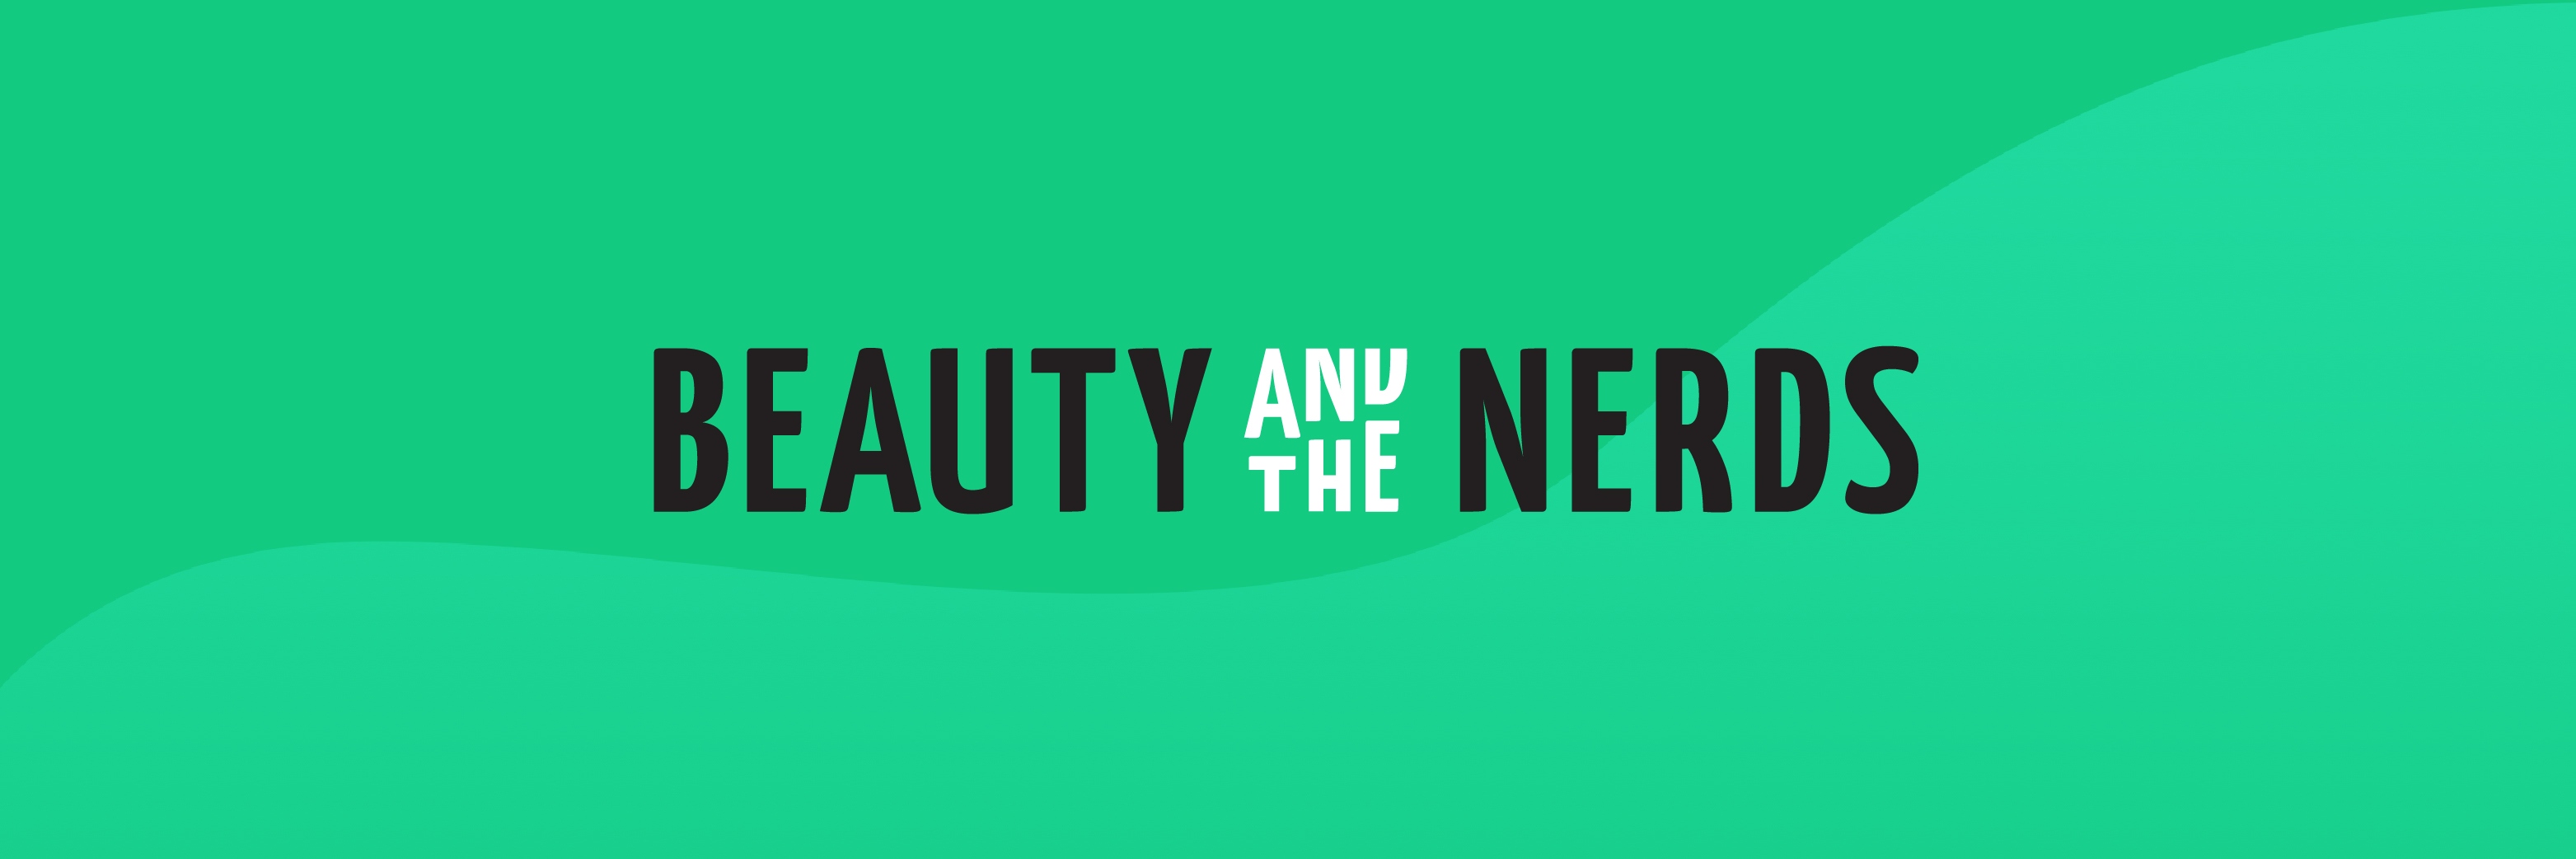 Beauty and the Nerds